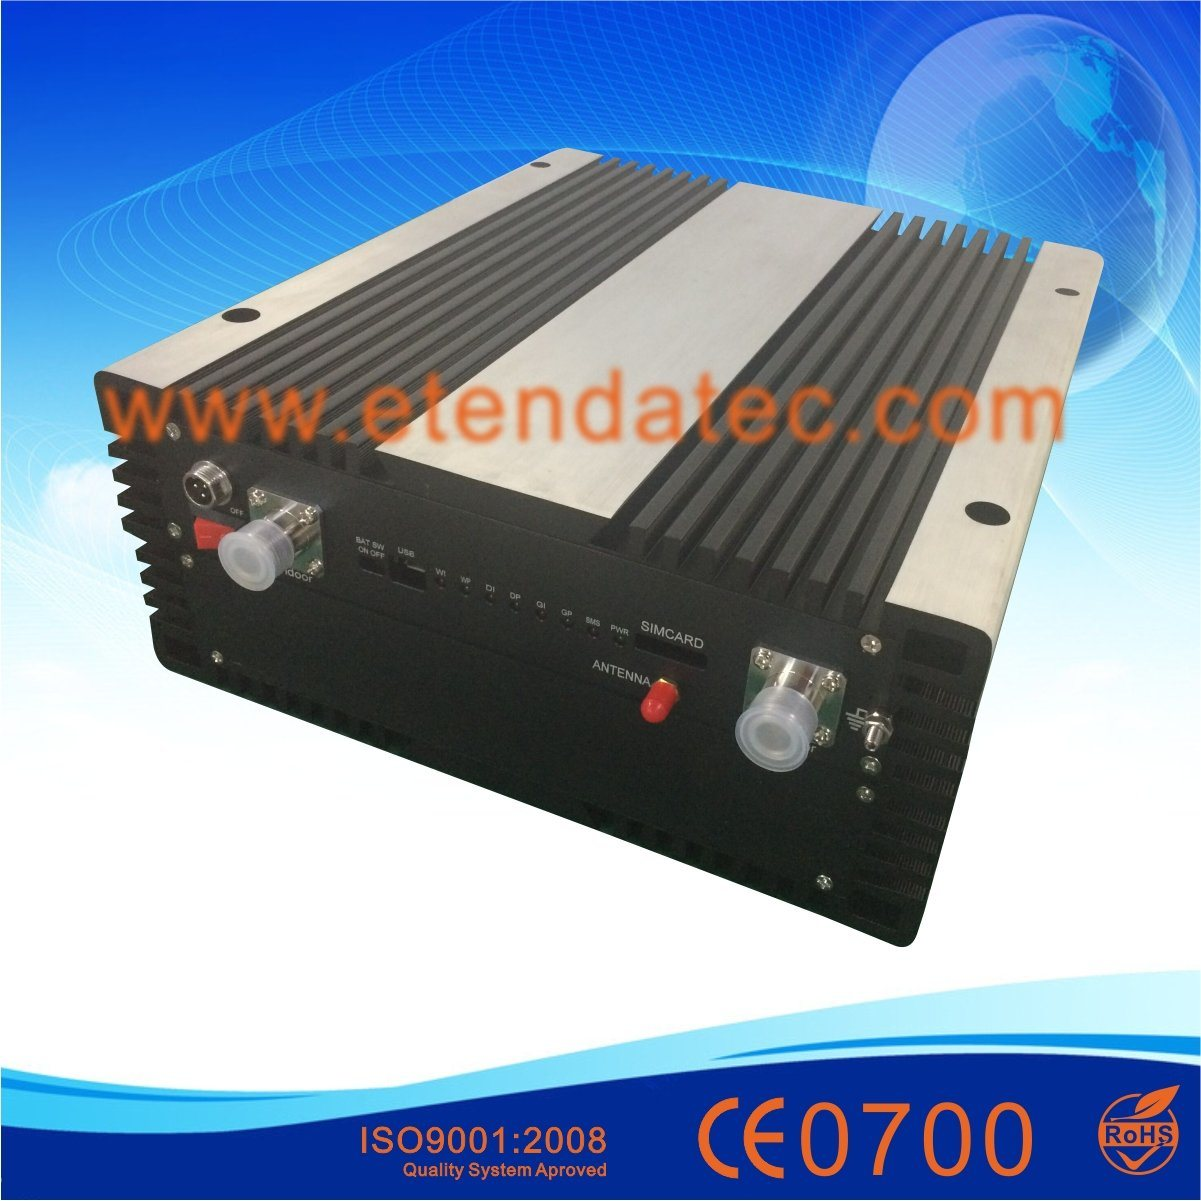 20dBm to 43dBm Band Selective & Industrial Signal Booster with Remote Monitor and Control Repeater